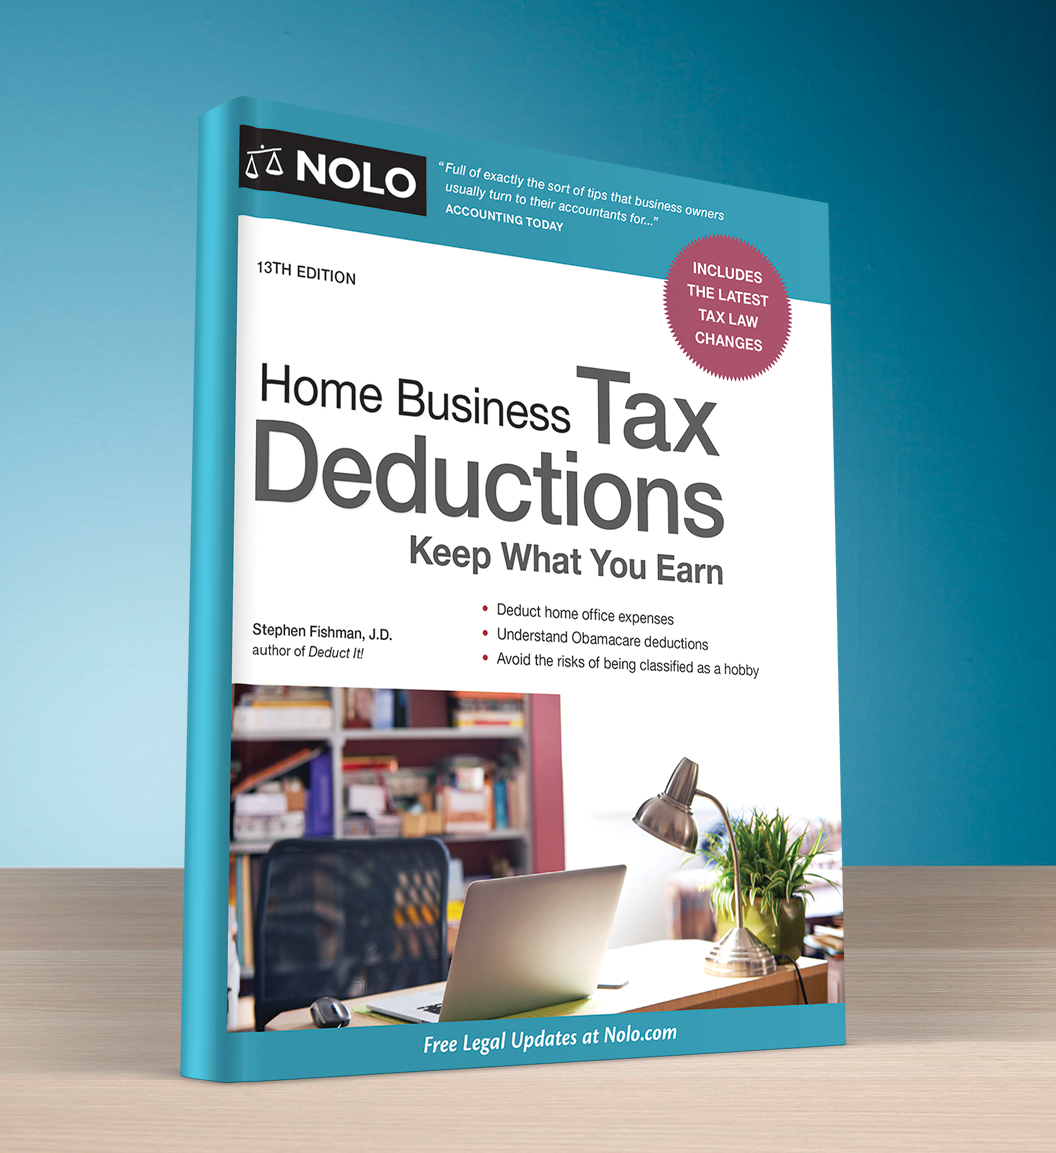 Home Business Tax Deductions (13th edition) - #4750